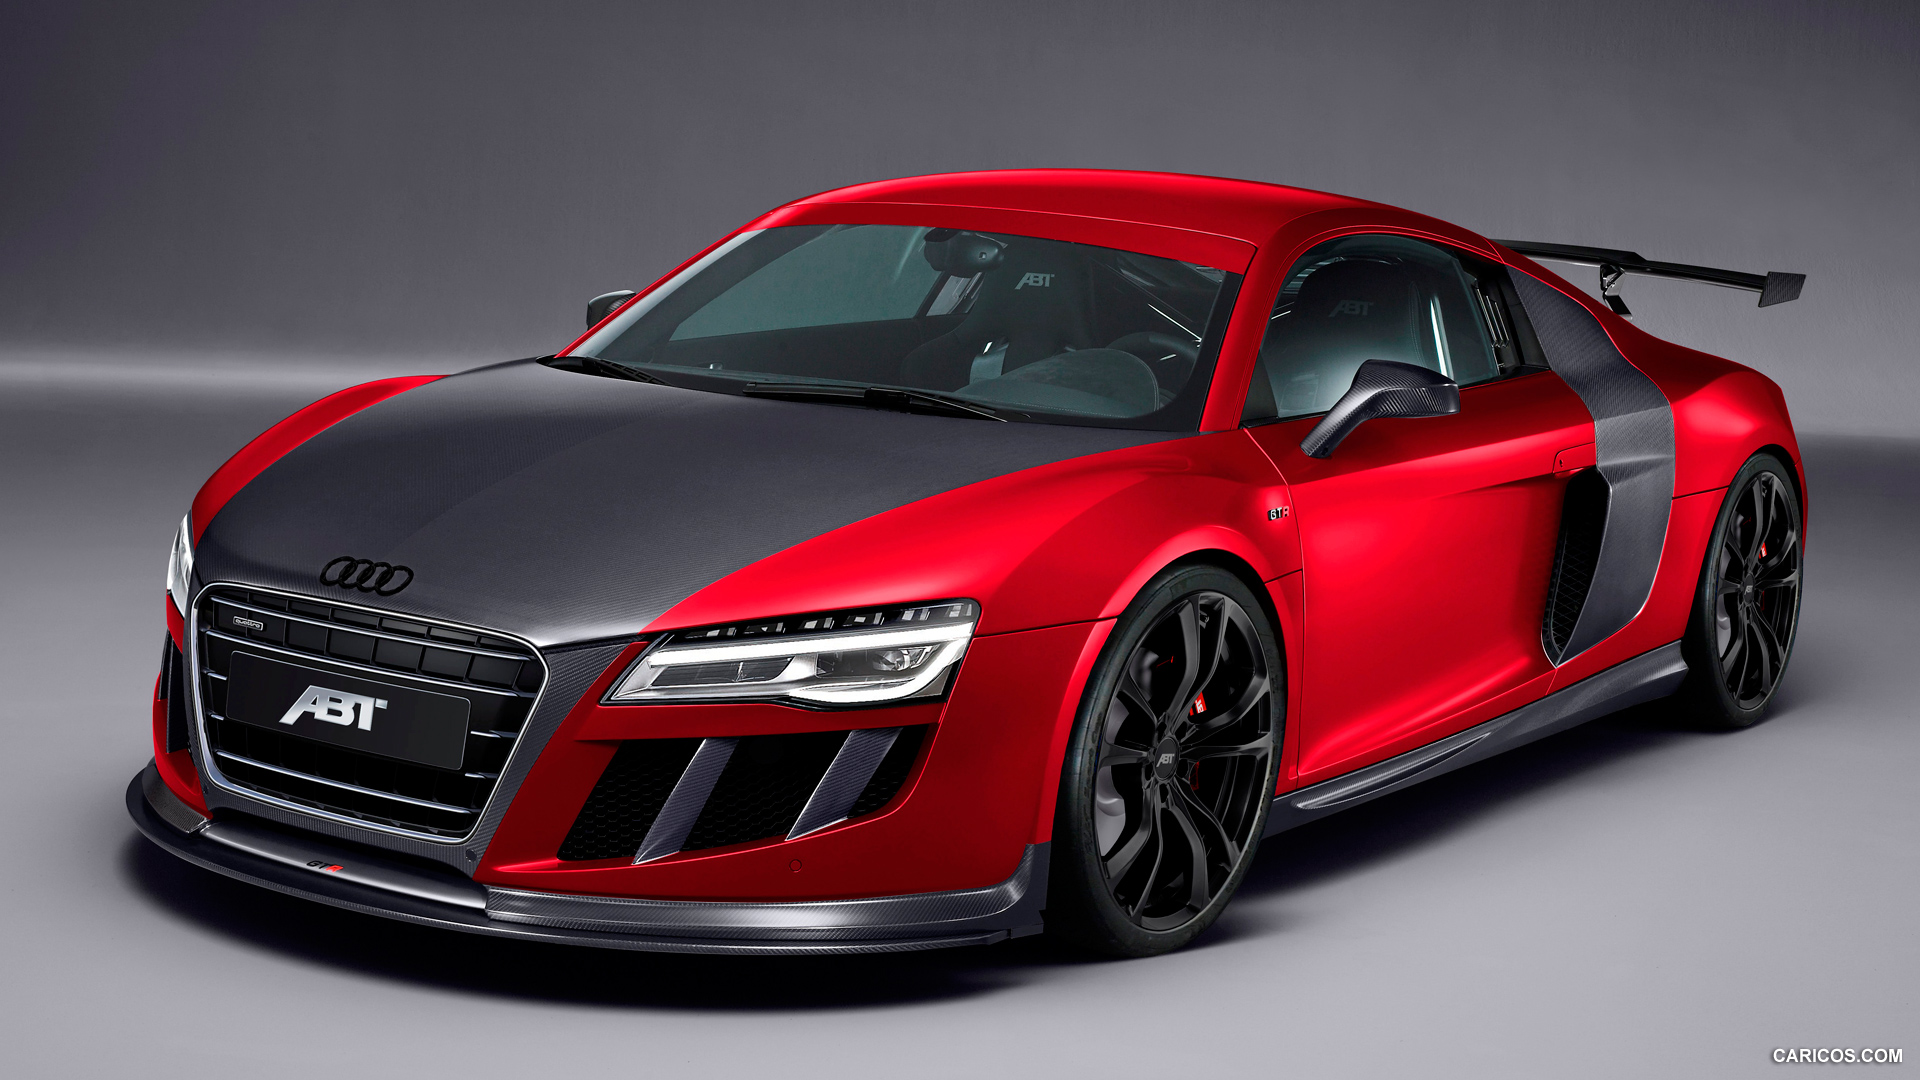 Red Audi R8 Wallpaper Hd Desktop 10 HD Wallpapers